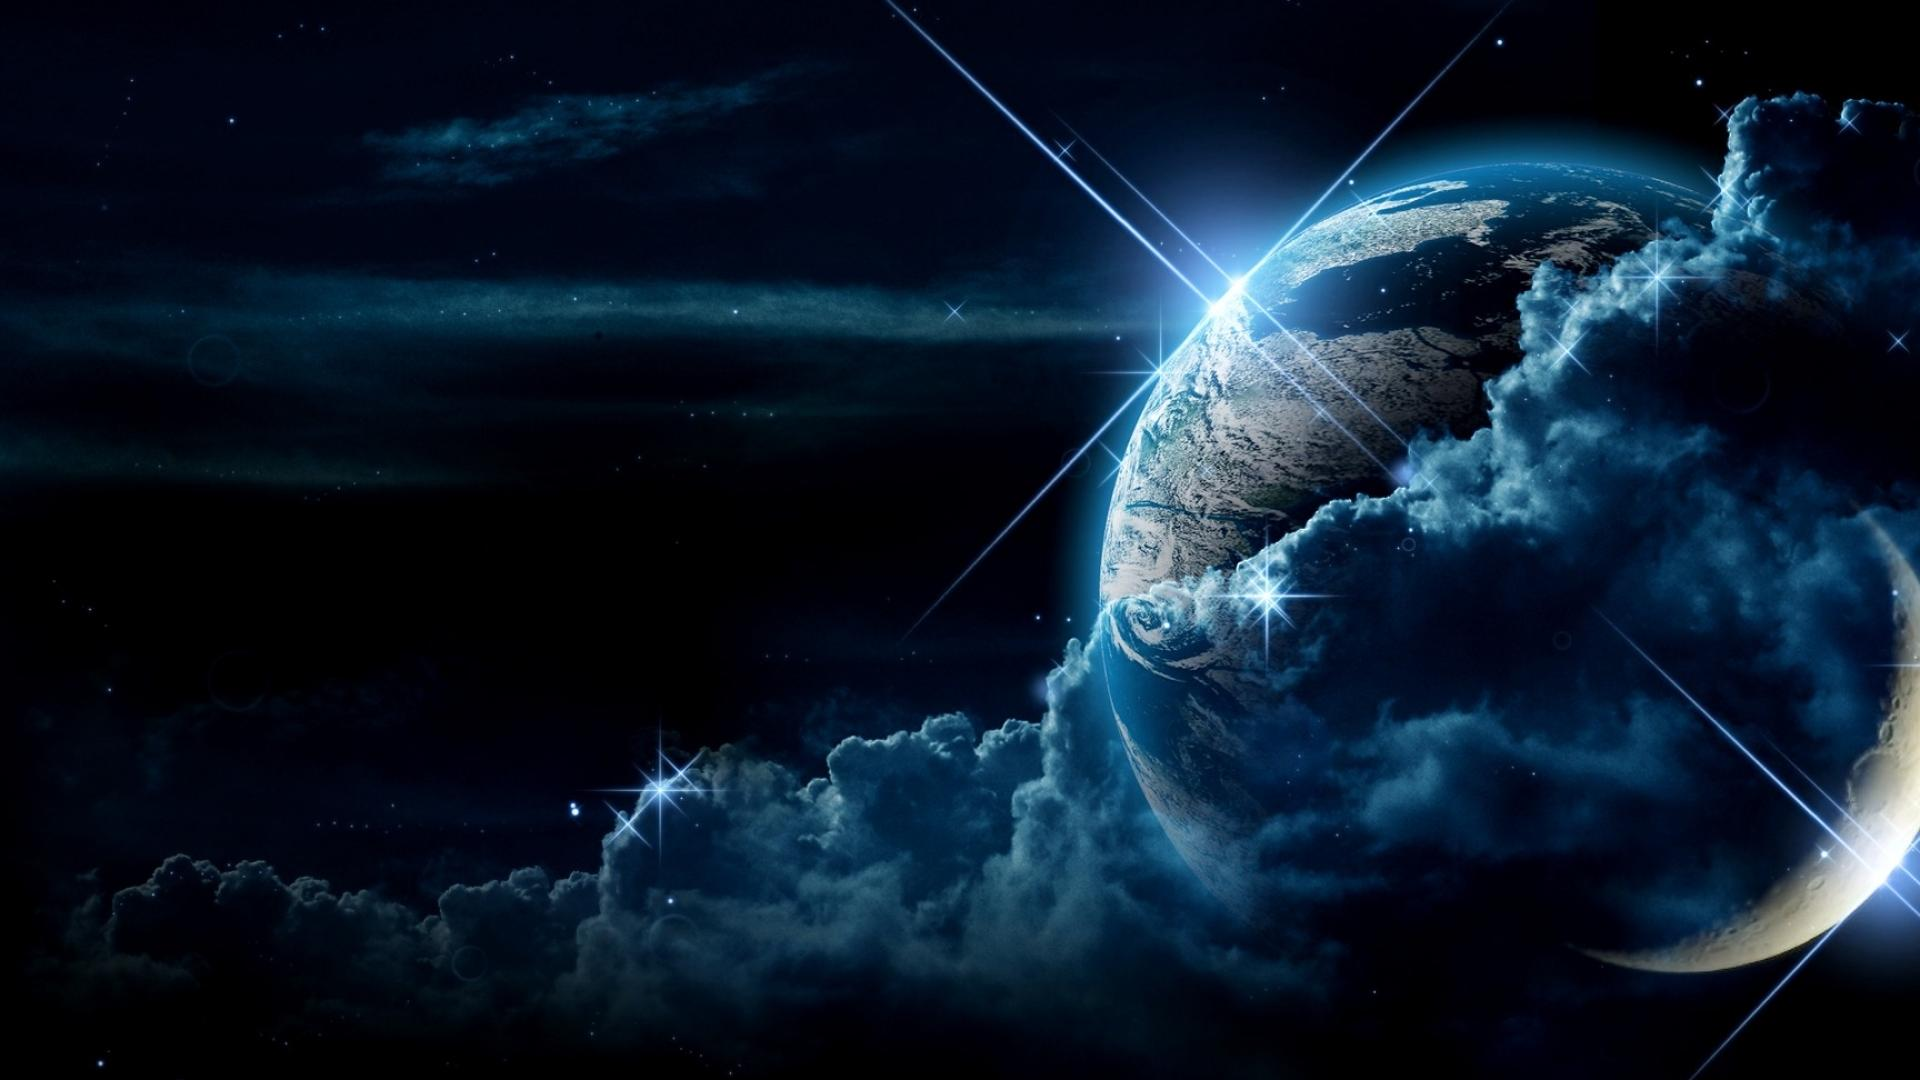 Hd Wallpaper Earth Space 1920x1080px